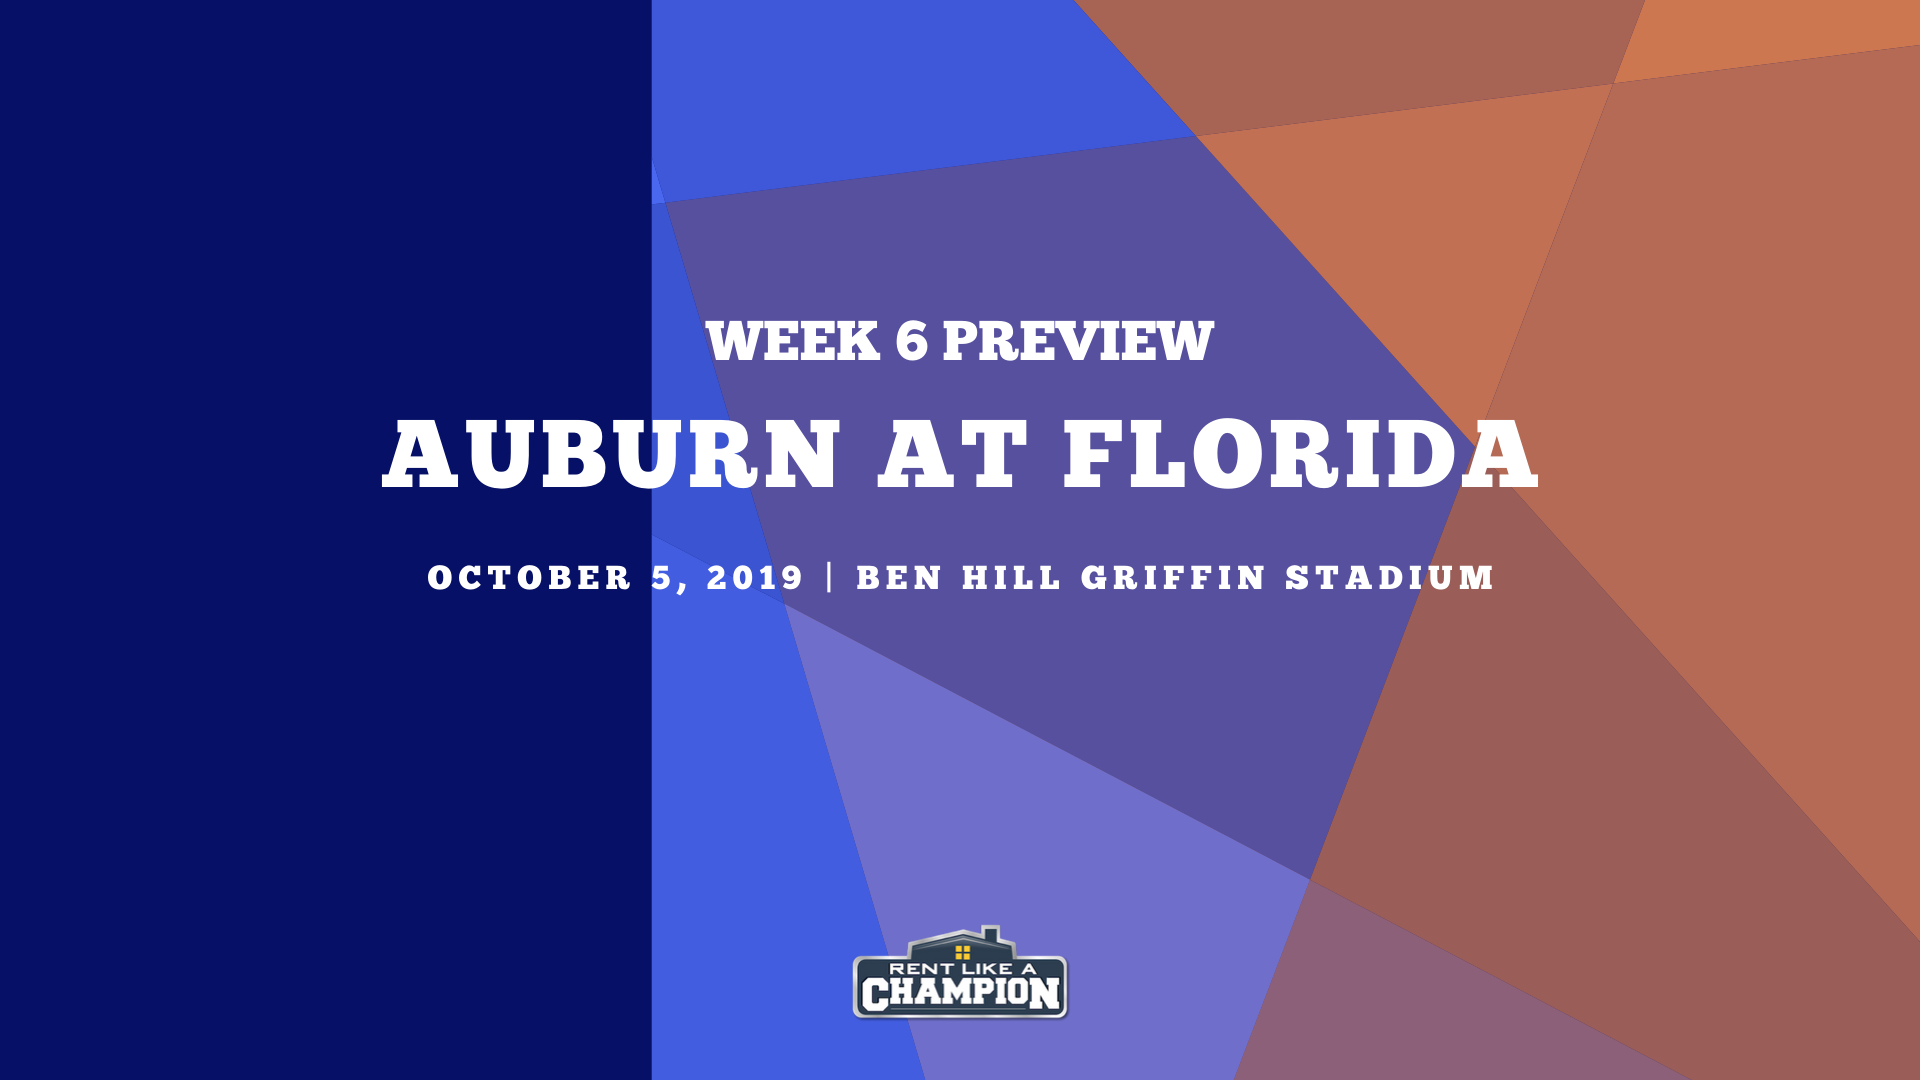 Auburn vs. Florida: Preview, keys to the game, and predictions